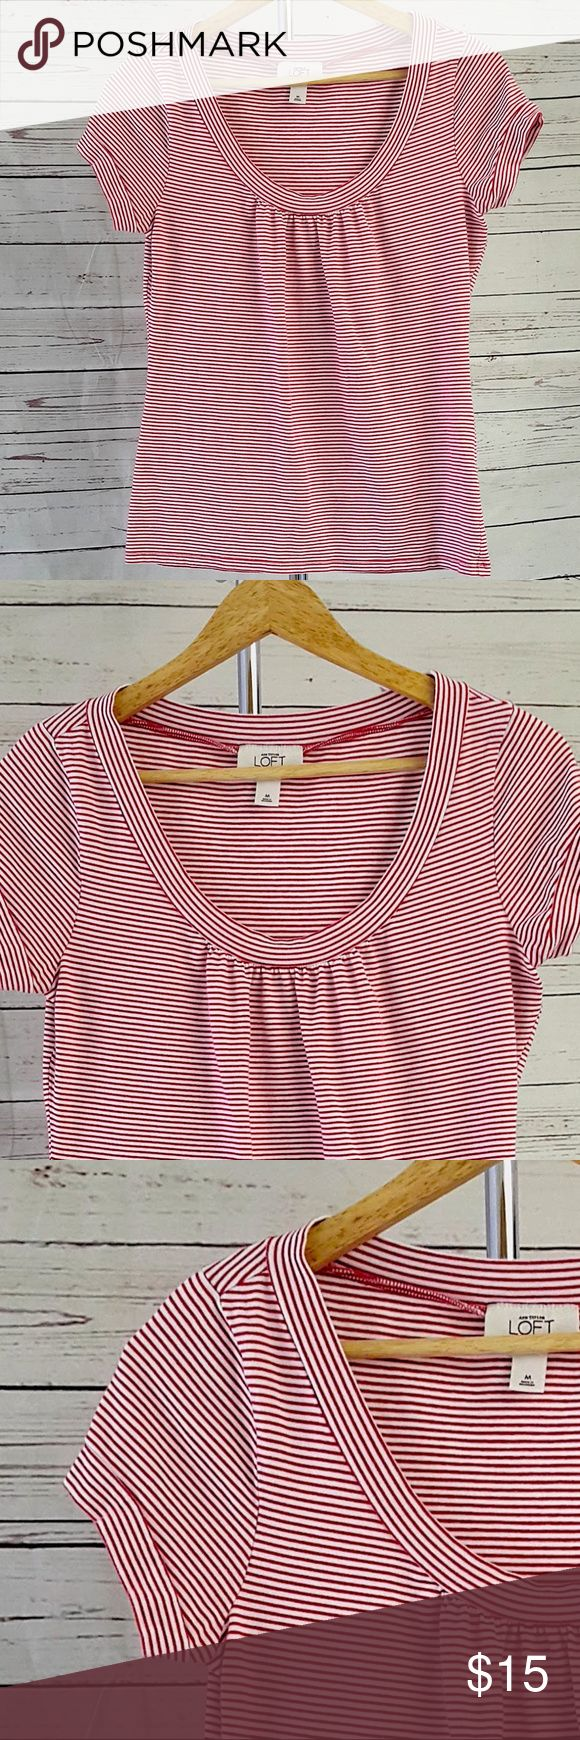 """Ann Taylor LOFT red white striped short sleeve top Ann Taylor LOFT red and white striped short sleeve top with scoop neck. Neck has small pleats in front. Sleeves have faux cuffs. Excellent pre-owned condition with no stains or tears.  Size M  Measurements are approximate and taken laying flat: armpit to armpit: 18 1/4"""" shoulder to hem: 24""""  B14 Ann Taylor Tops Tees - Short Sleeve"""